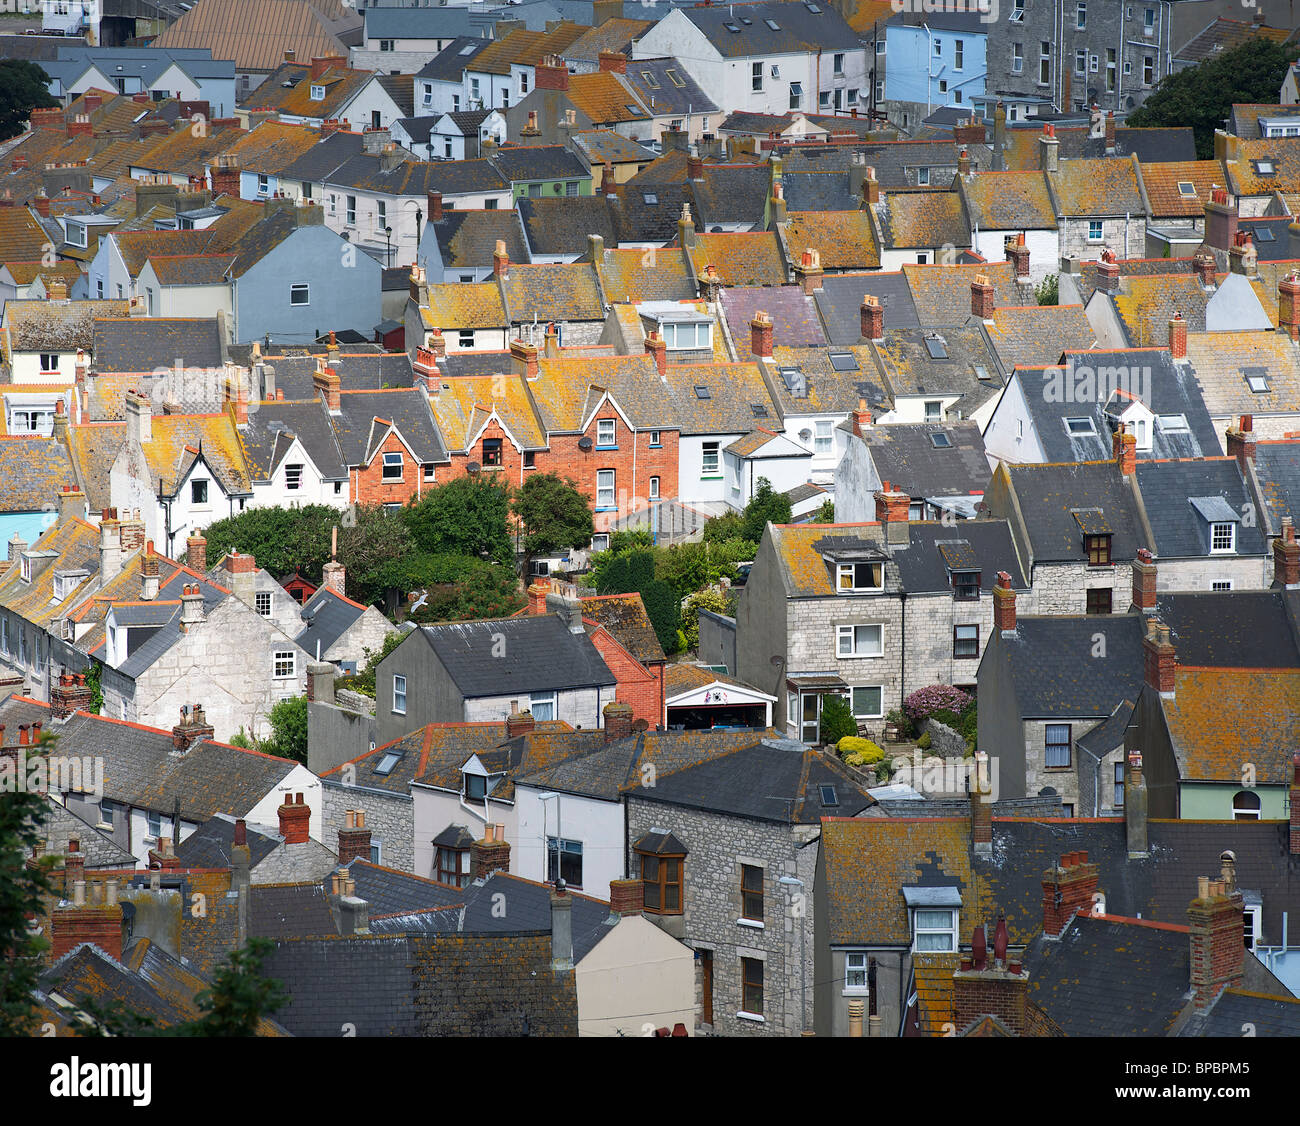 Rooftops of Fortuneswell overlooking Portland Harbour, Weymouth, Dorset, UK - Stock Image